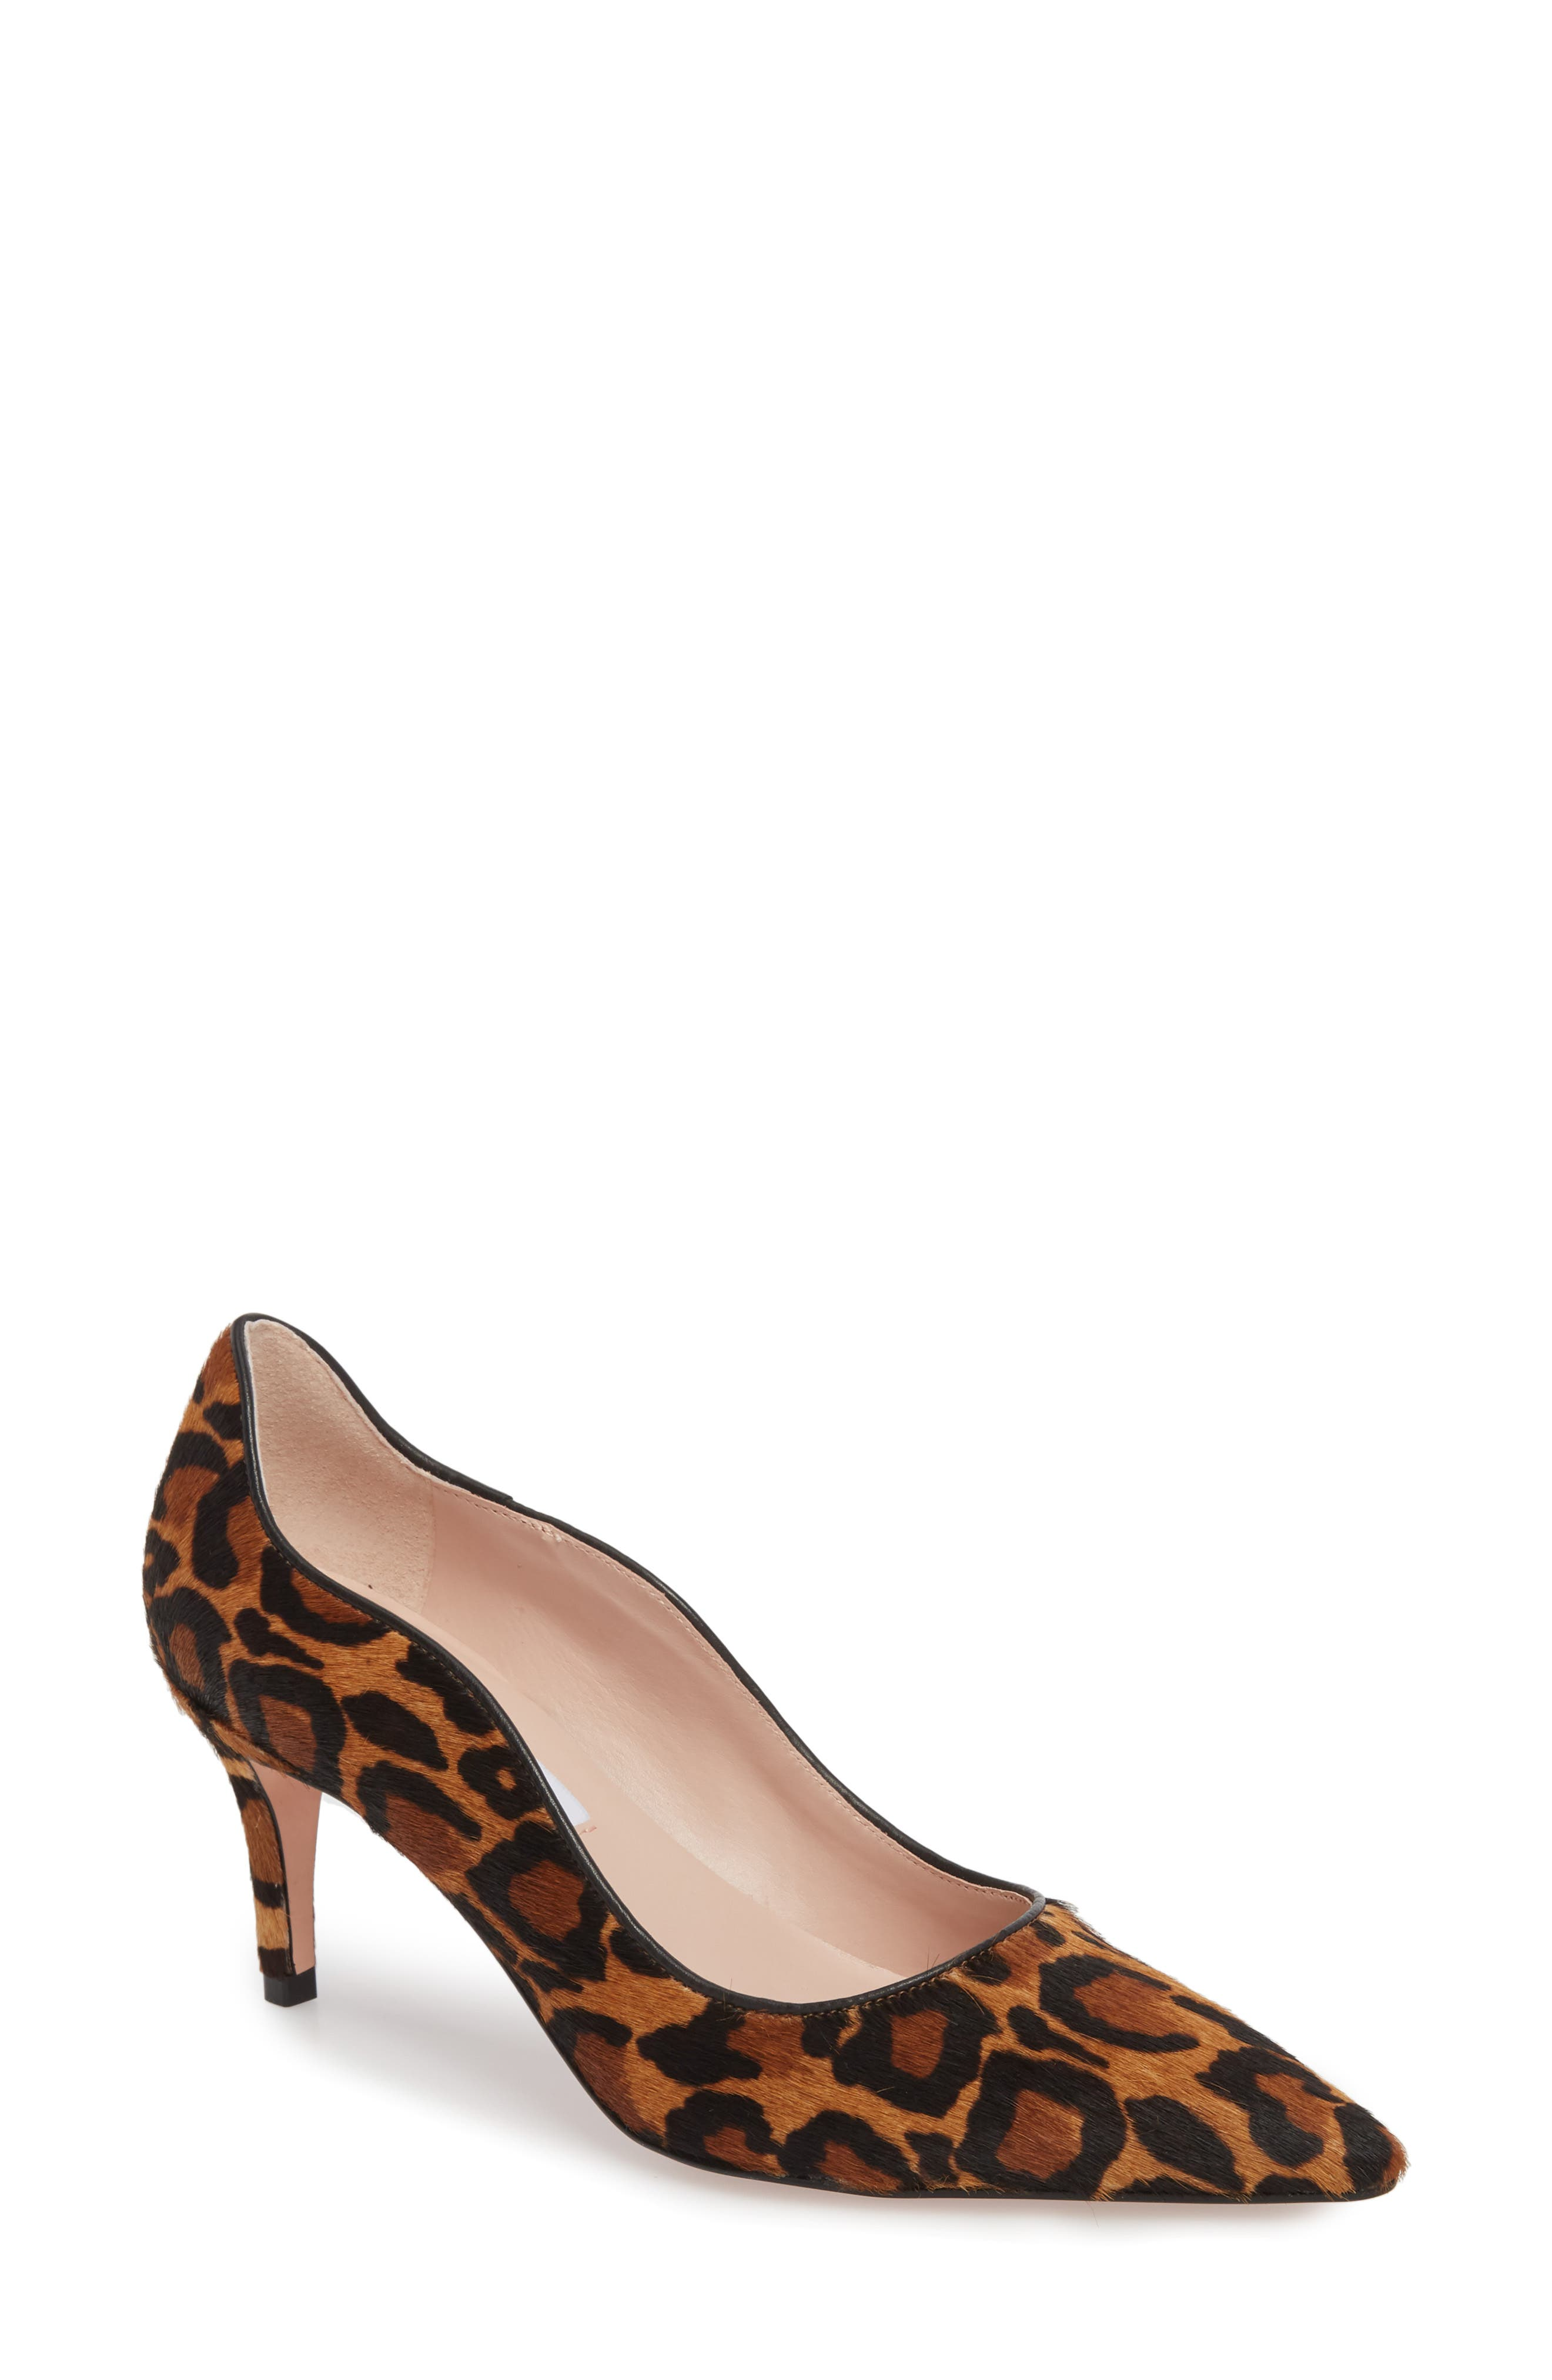 Anika 70 Pump,                             Main thumbnail 1, color,                             CAMEL MULTI HAIR CALF